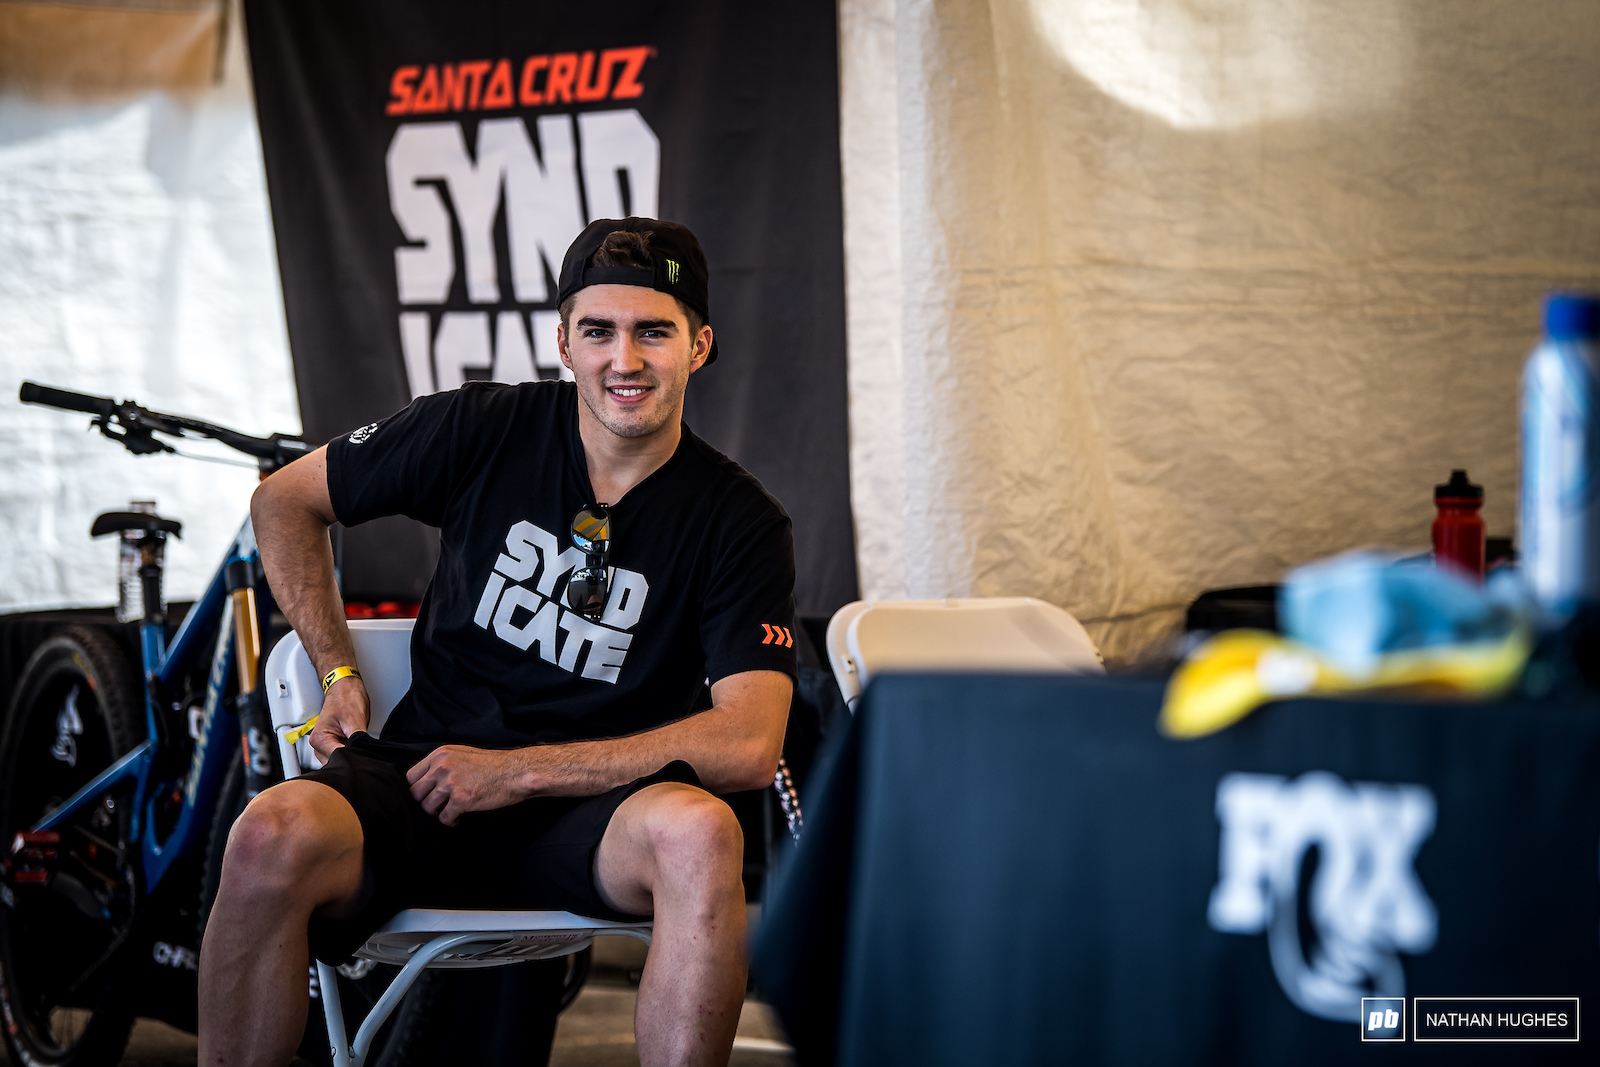 Luca Shaw stoked after a solid 10th at Worlds no doubt will want to put an even bigger one on the board on US soil.